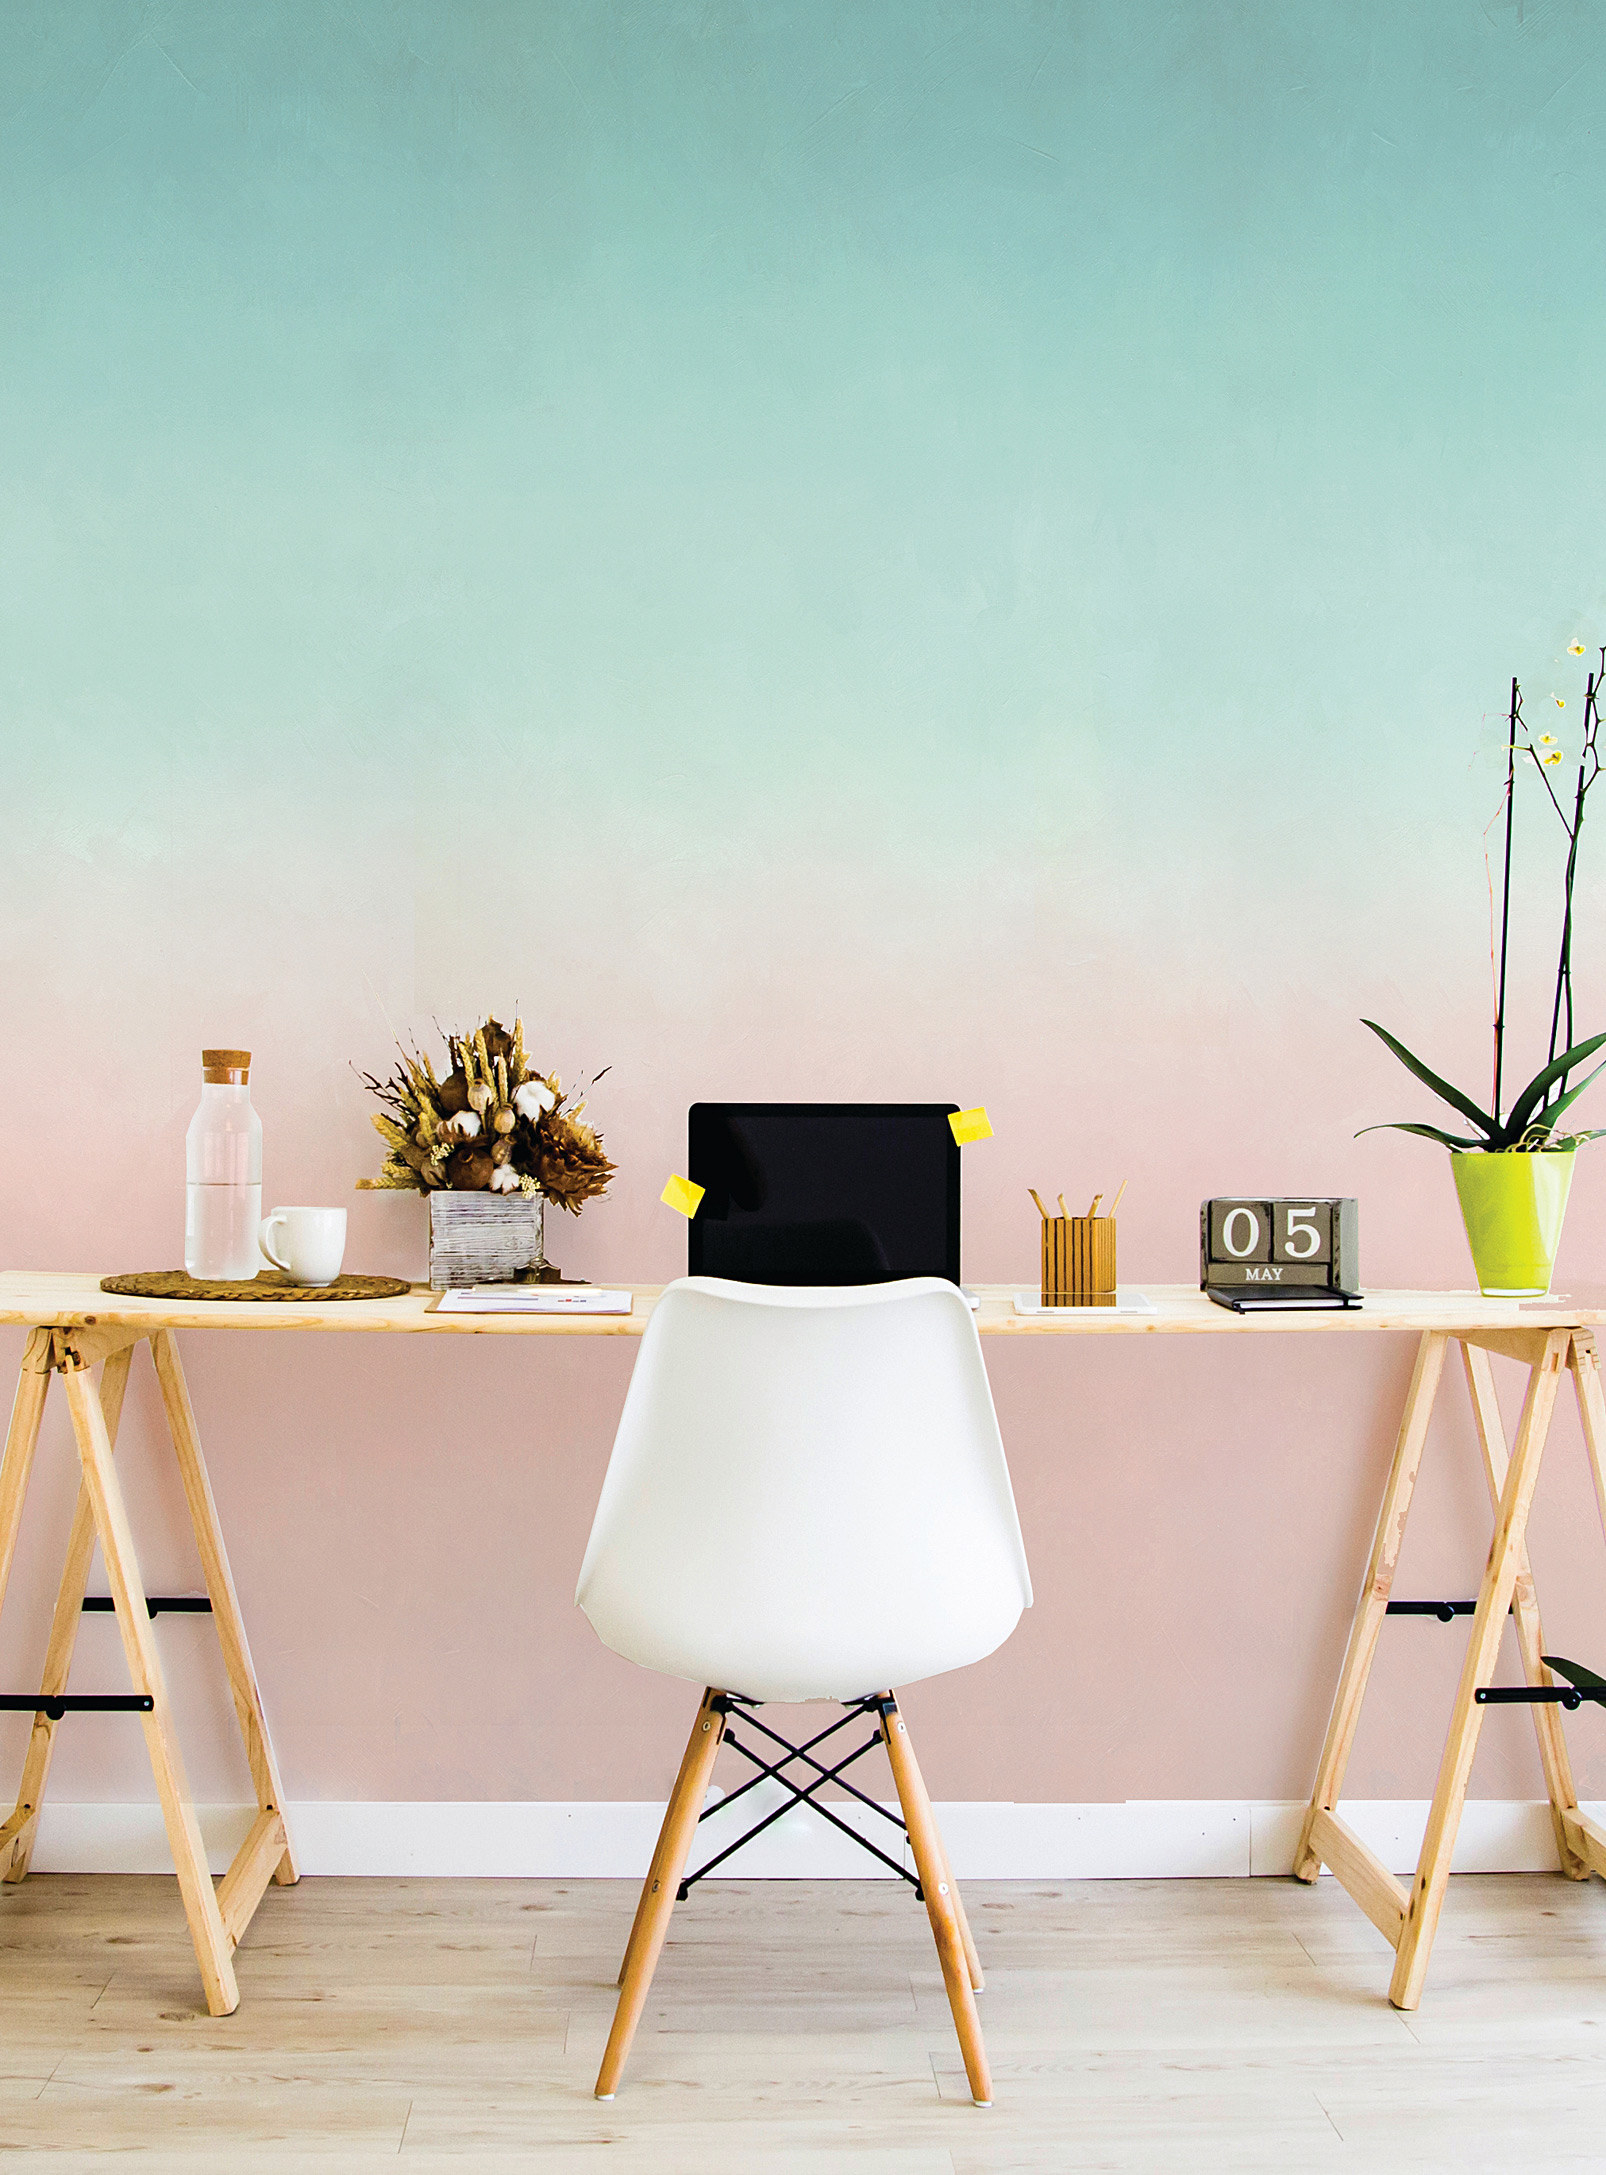 A long desk and chair placed against a large wall covered in wallpaper